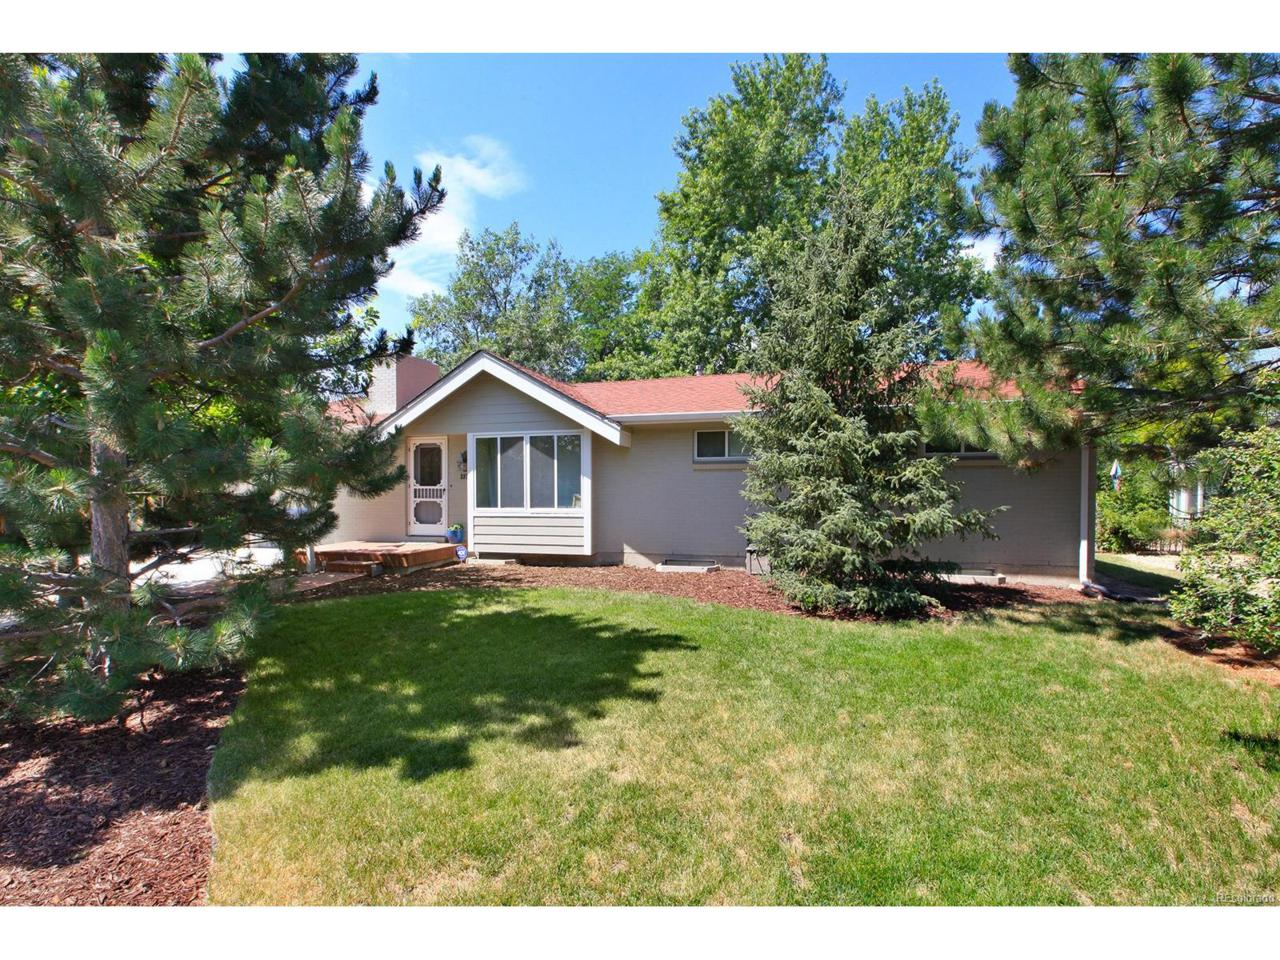 3371 S Fulton Court, Denver, CO 80231 (MLS #8350571) :: 8z Real Estate